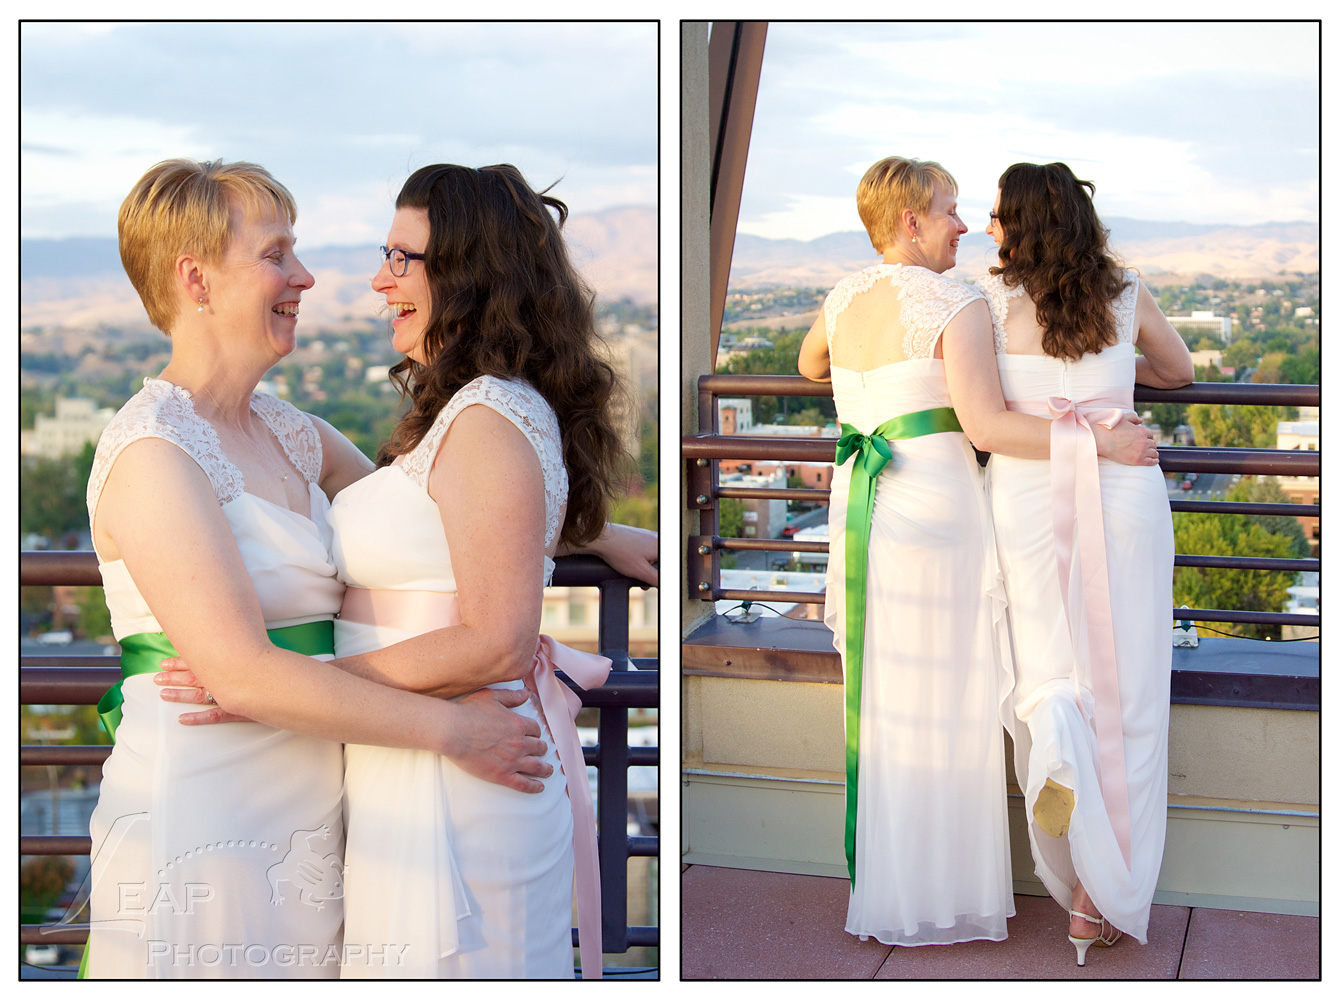 photos of 2 brides on Boise rooftop